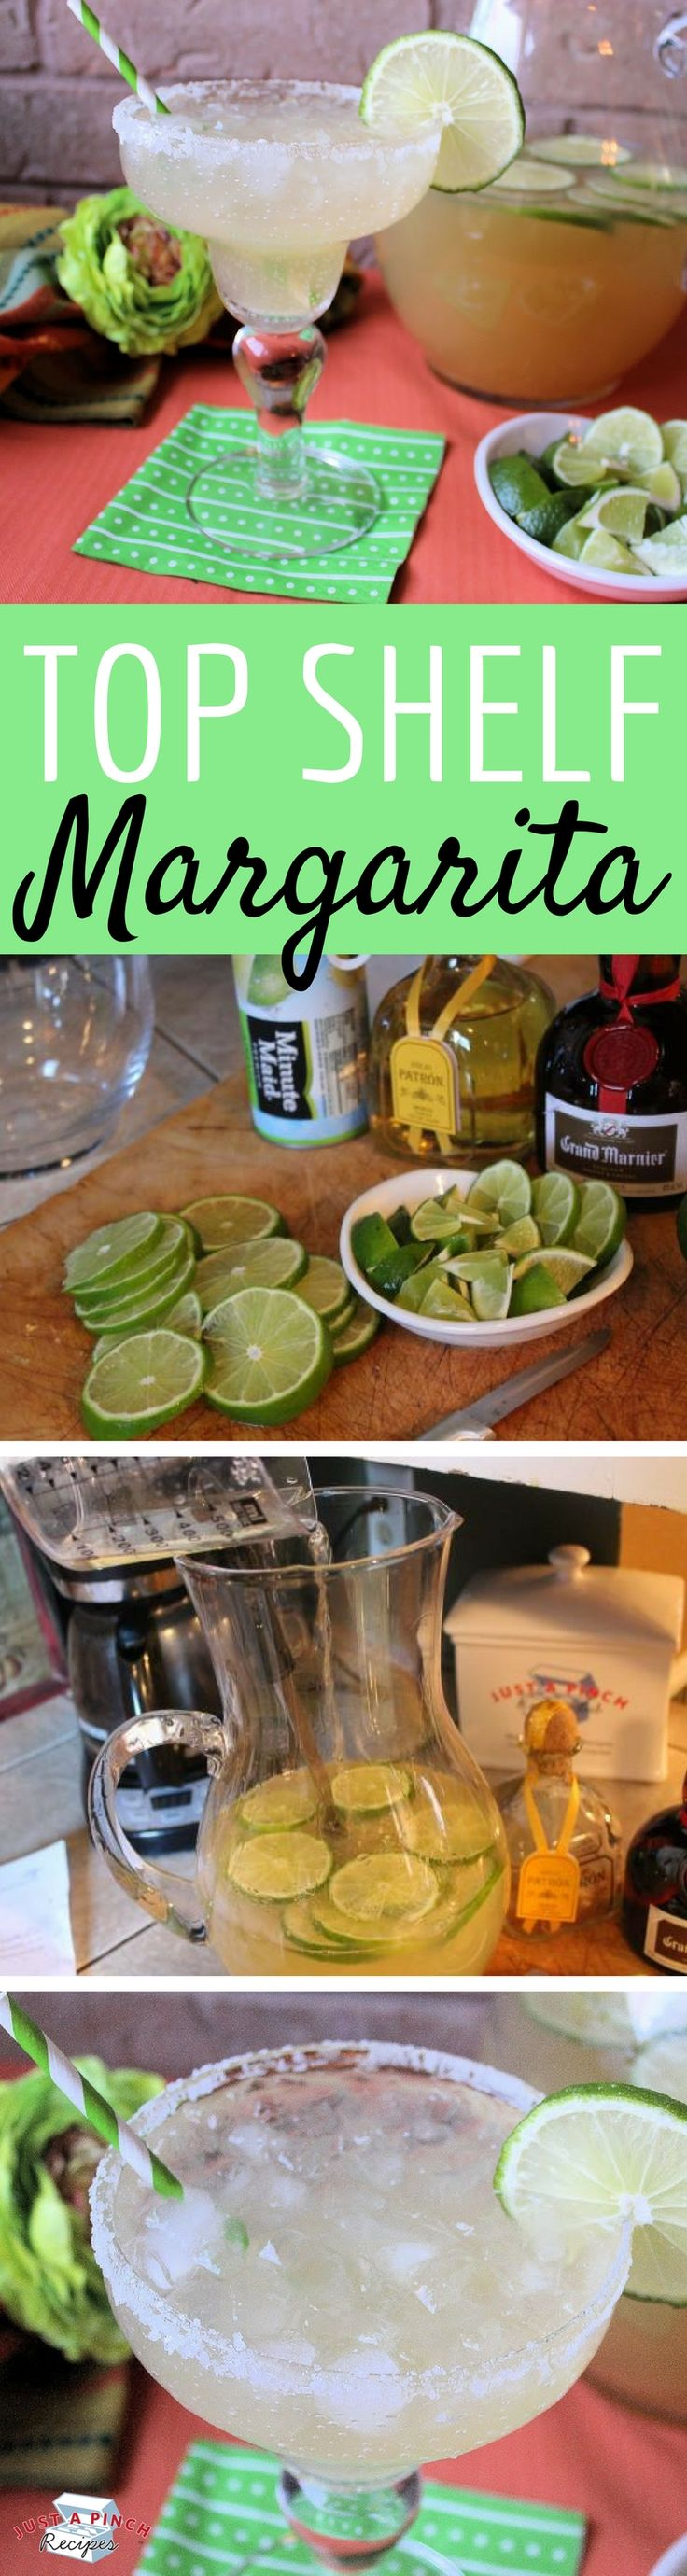 This refreshing margarita recipe truly lives up to its name. Premium liquor really makes a difference in this case. It's sweet with the just right amount of tartness mixed. They taste very smooth. So be careful while drinking... they'll sneak up on you. Cheers!